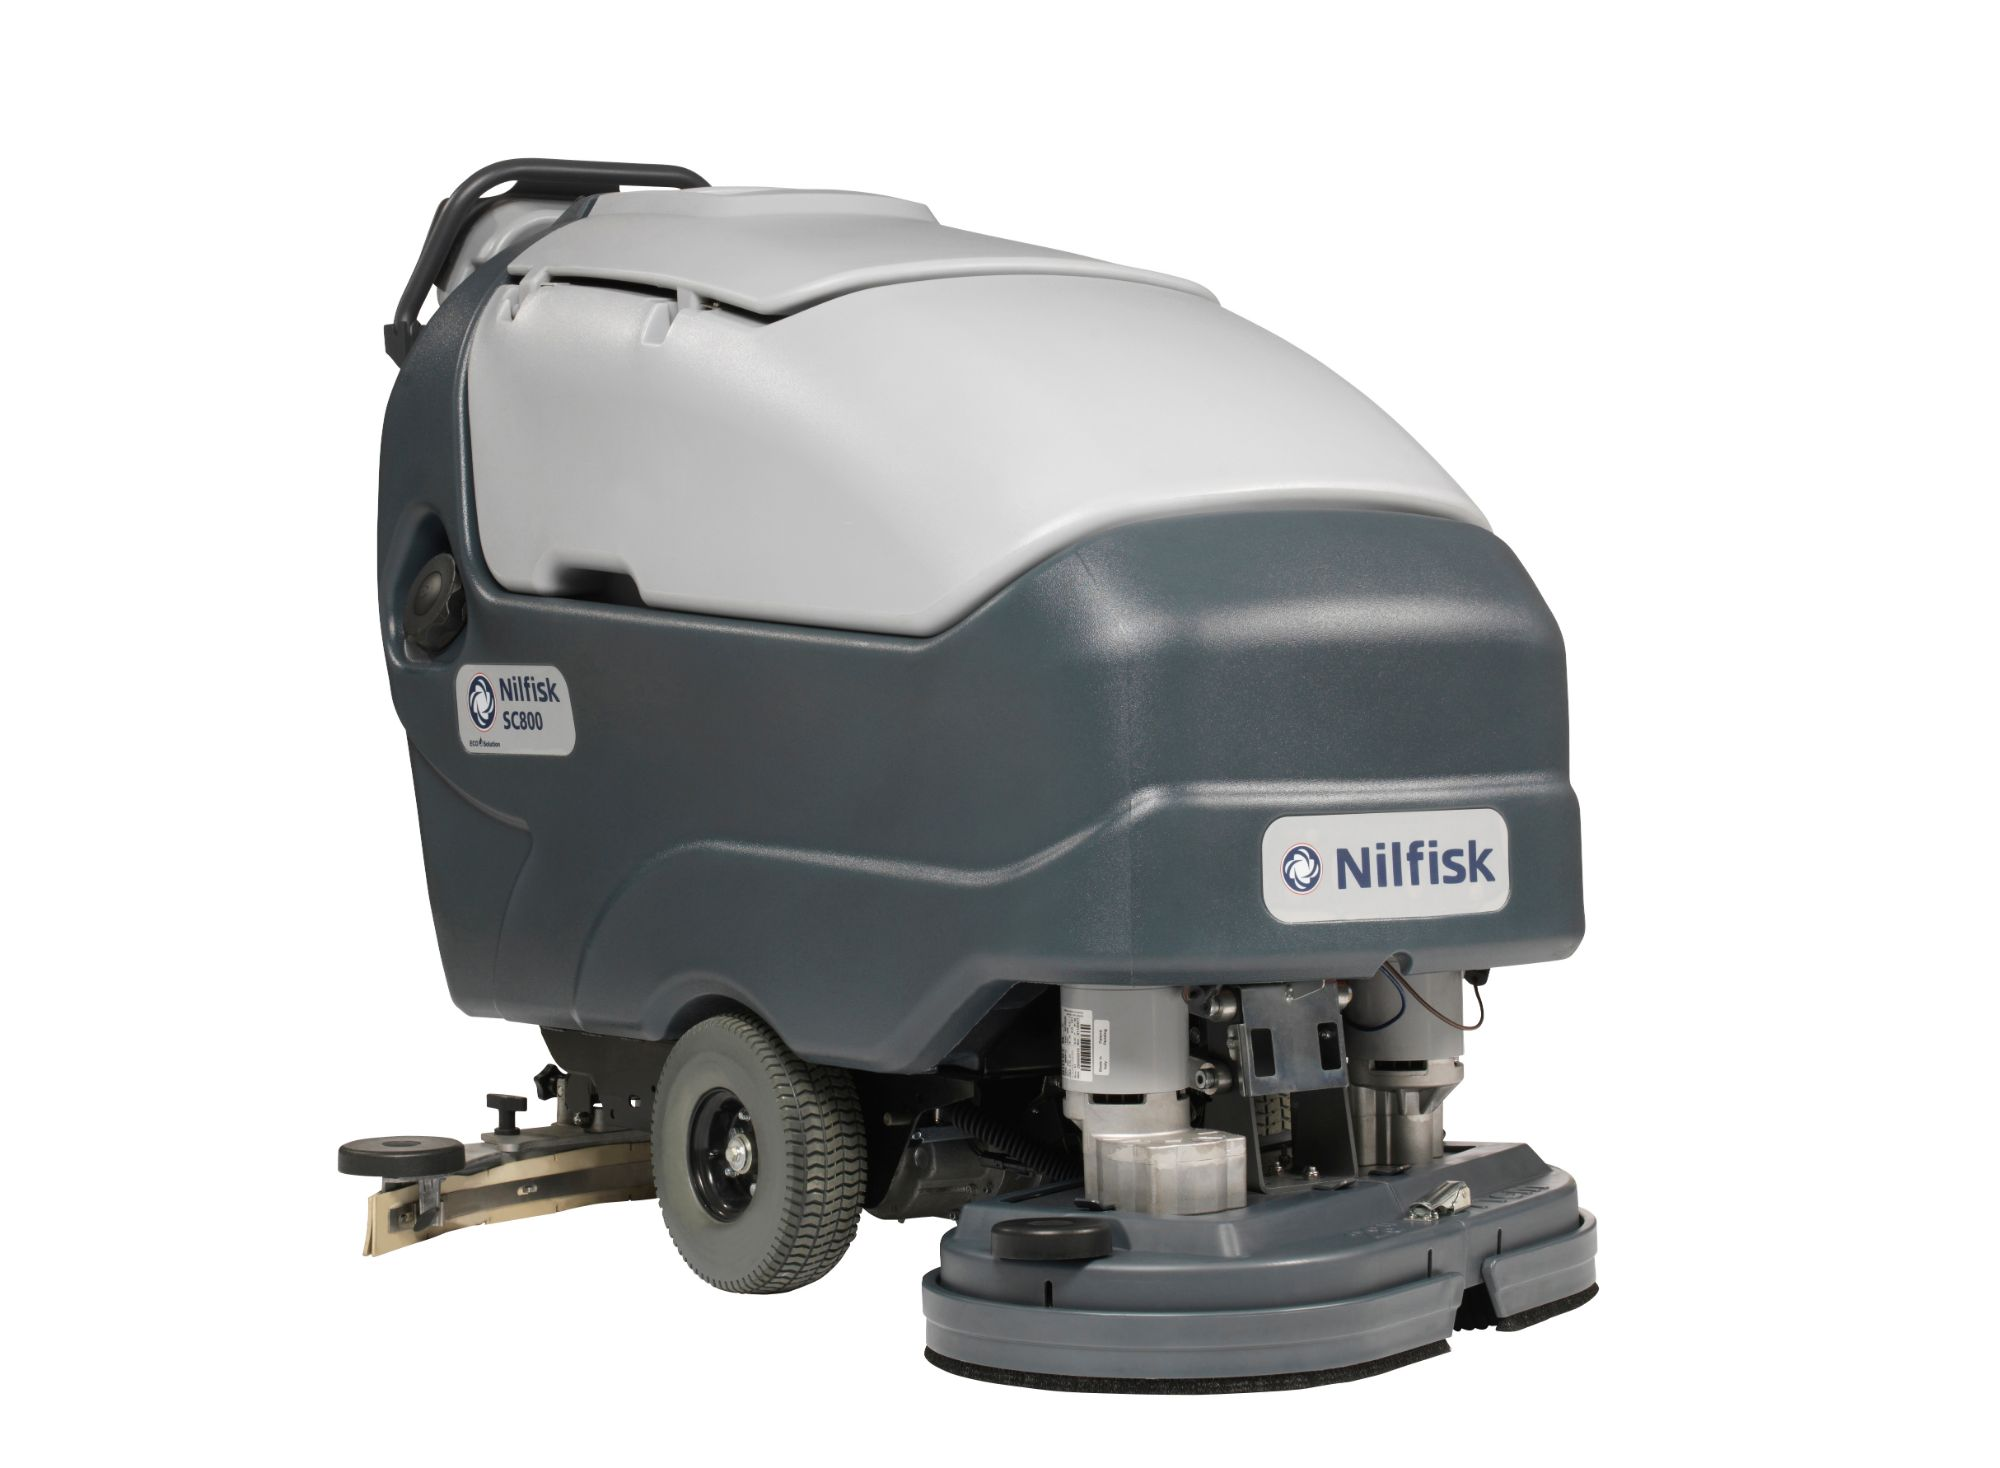 Nilfisk SC800 Walk Behind Scrubber Dryer